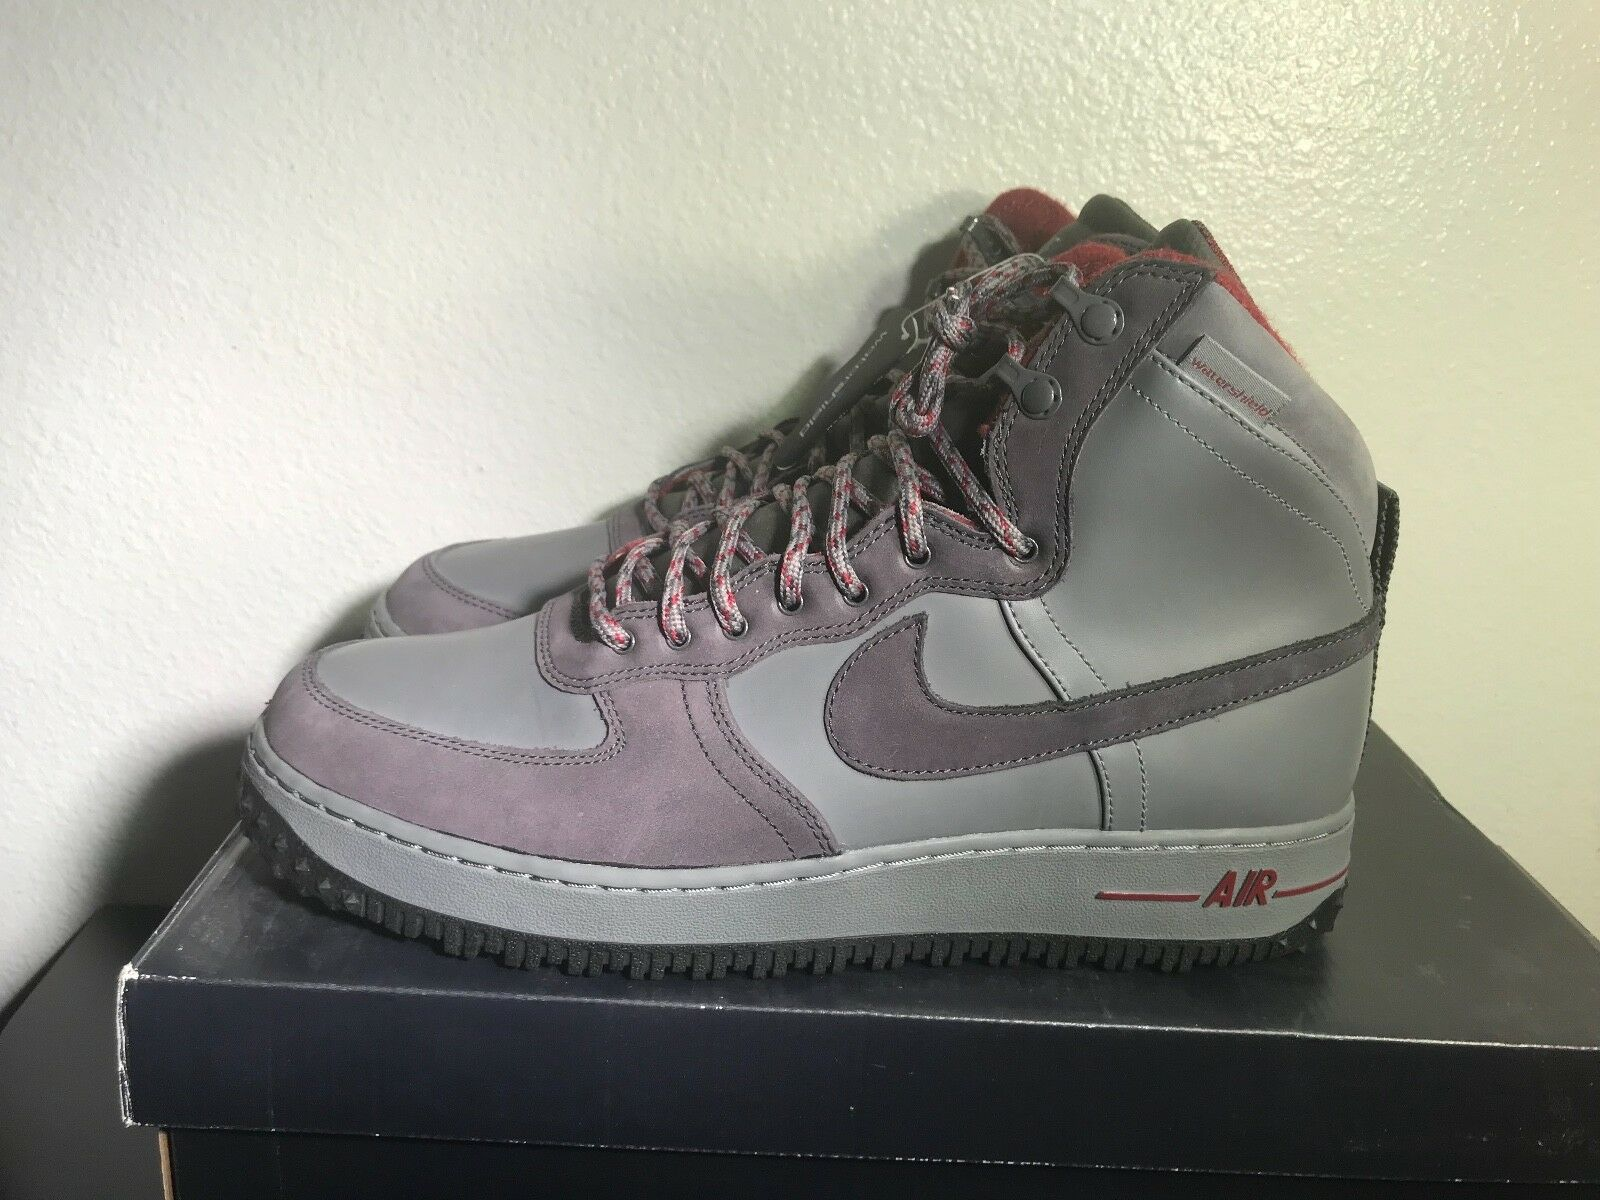 Air Force 1 Hi DCNS mtry BT St color 537889001 botas militares de color St gris marrón hombres 12 13 DS 2fa3c2